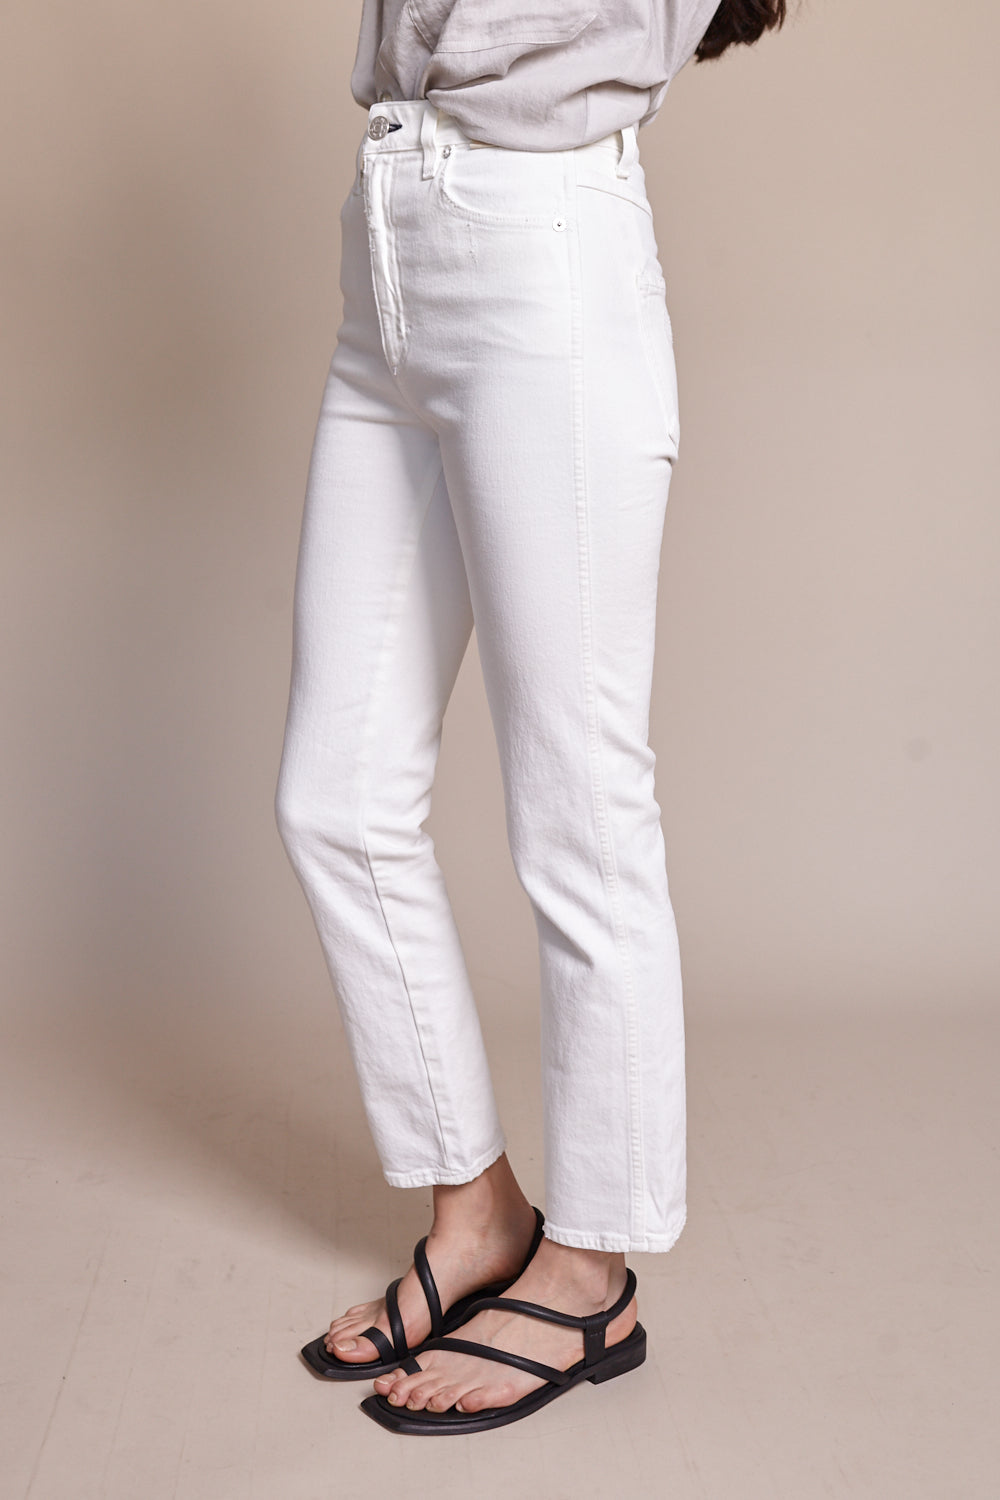 Chloe Crop Jean in Sea Salt